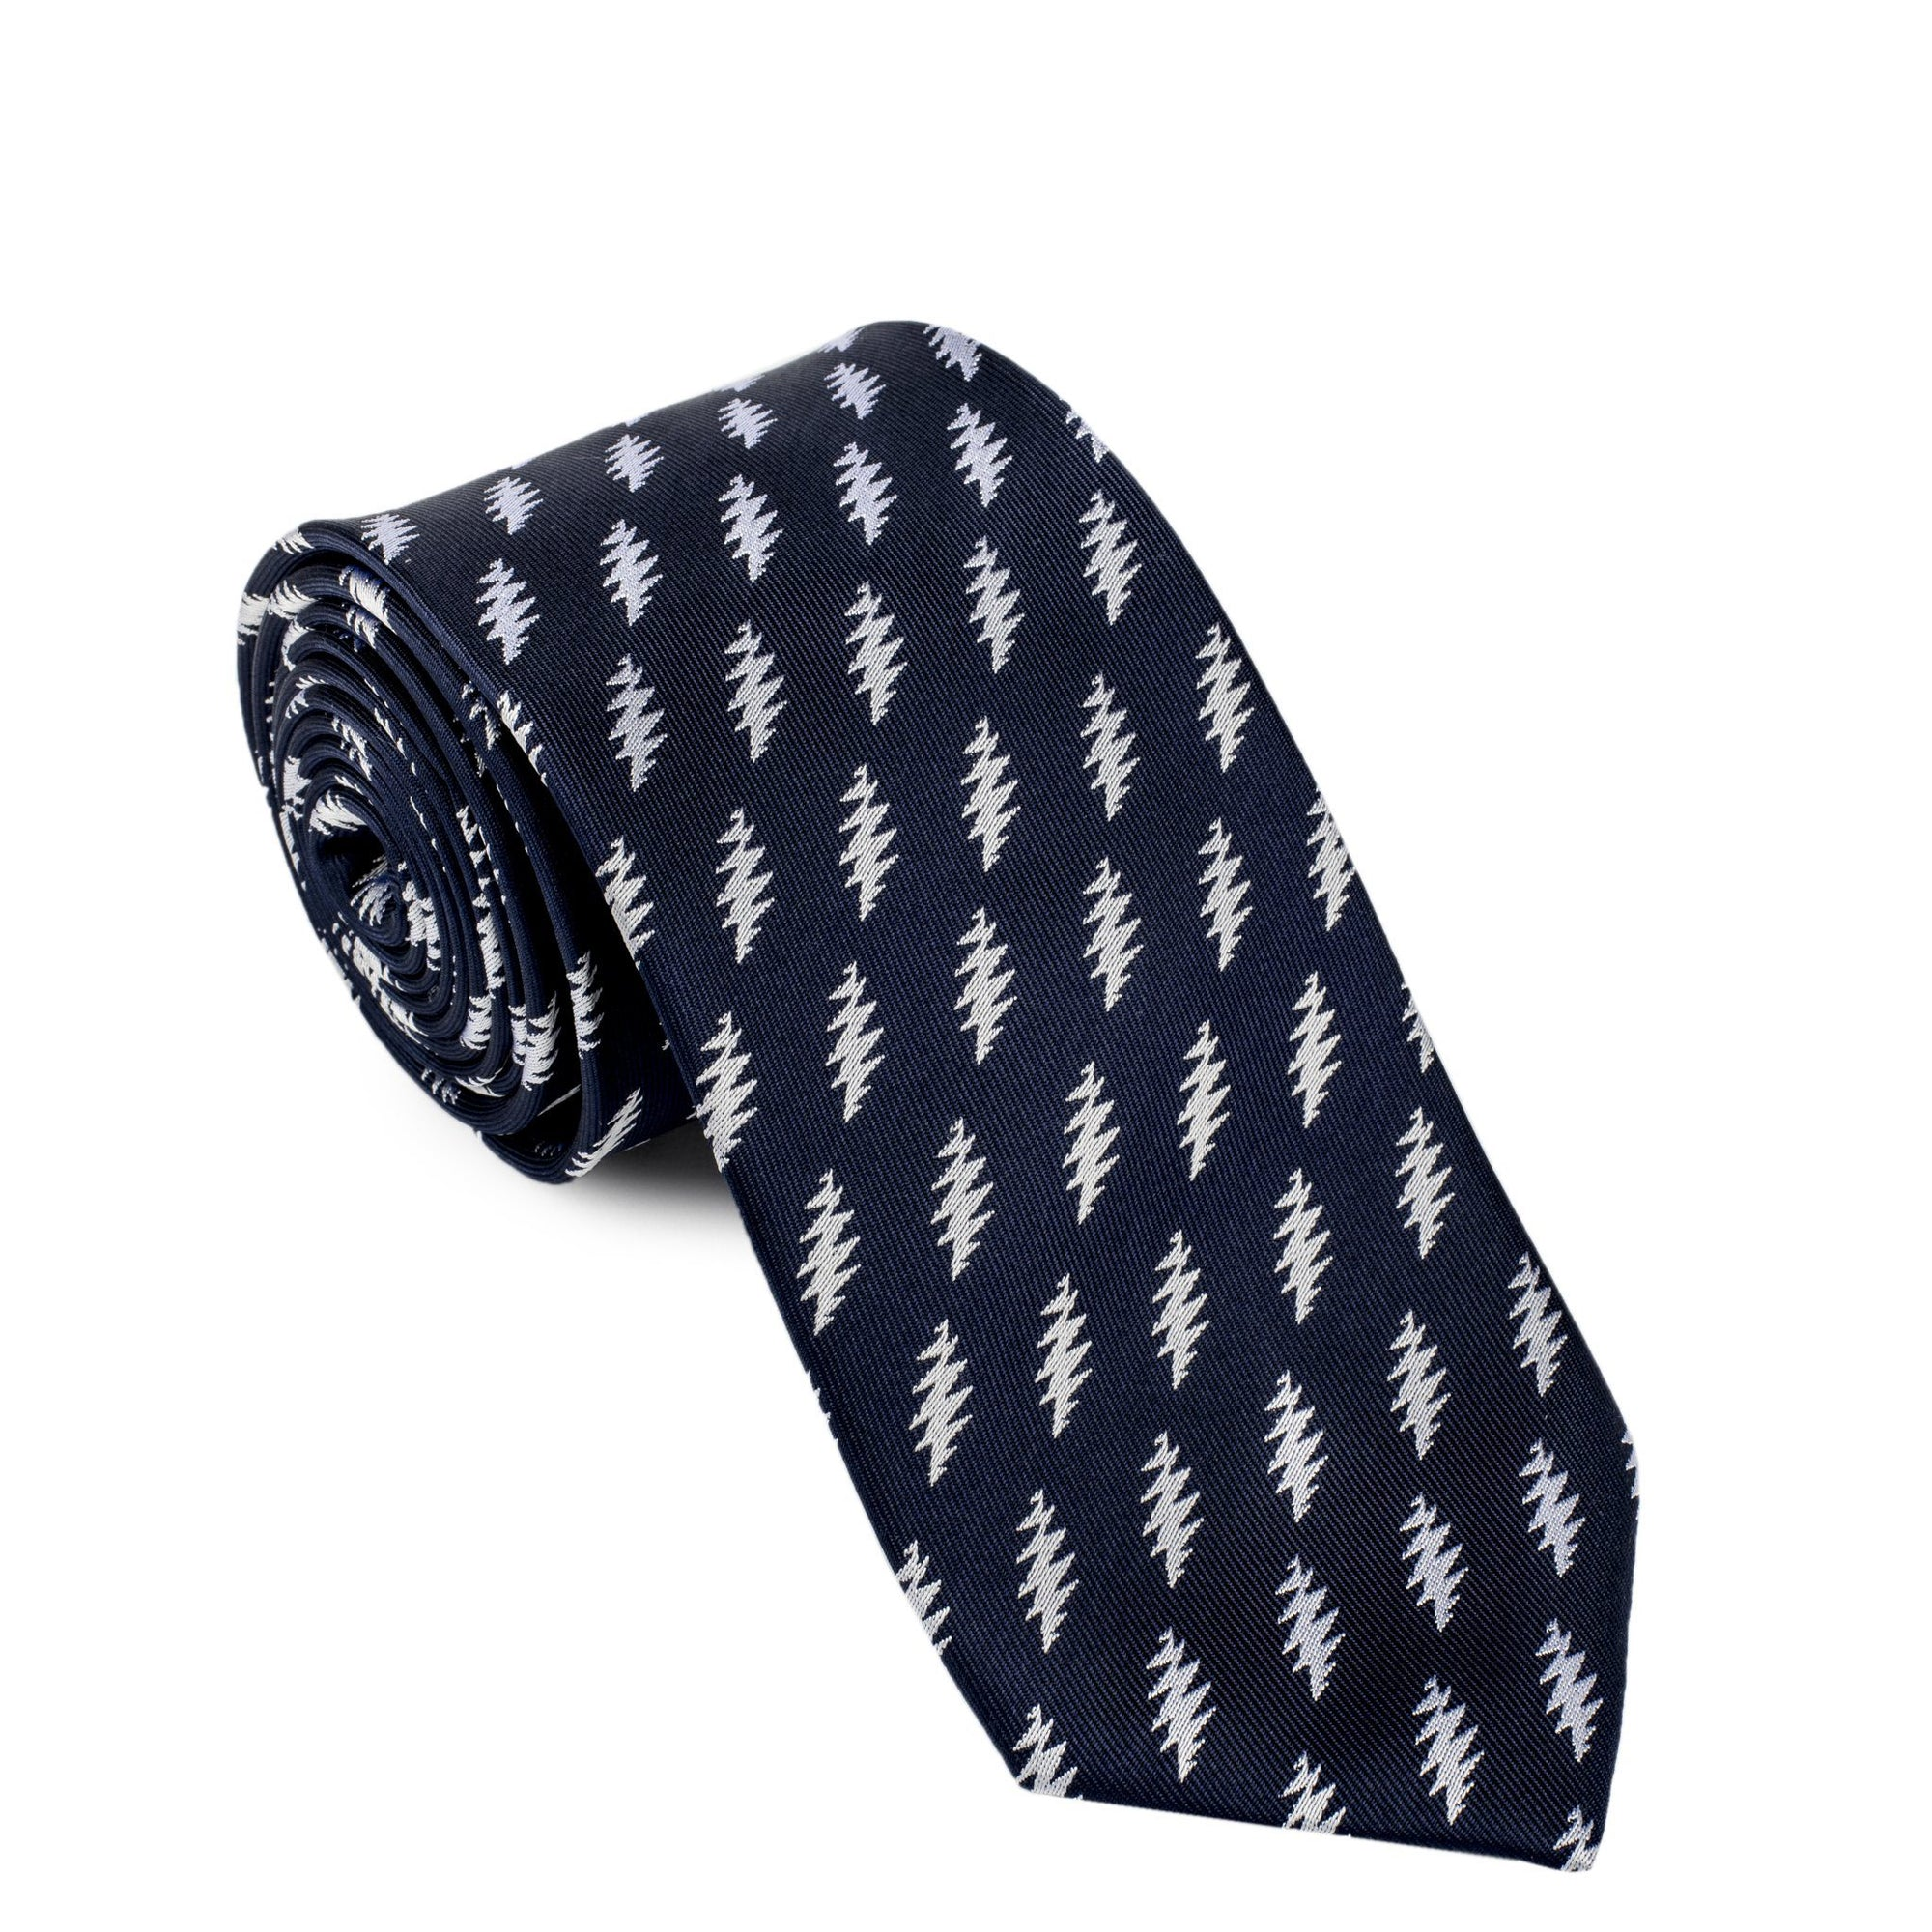 Grateful Dead Navy All Over Bolt Tie - Section 119